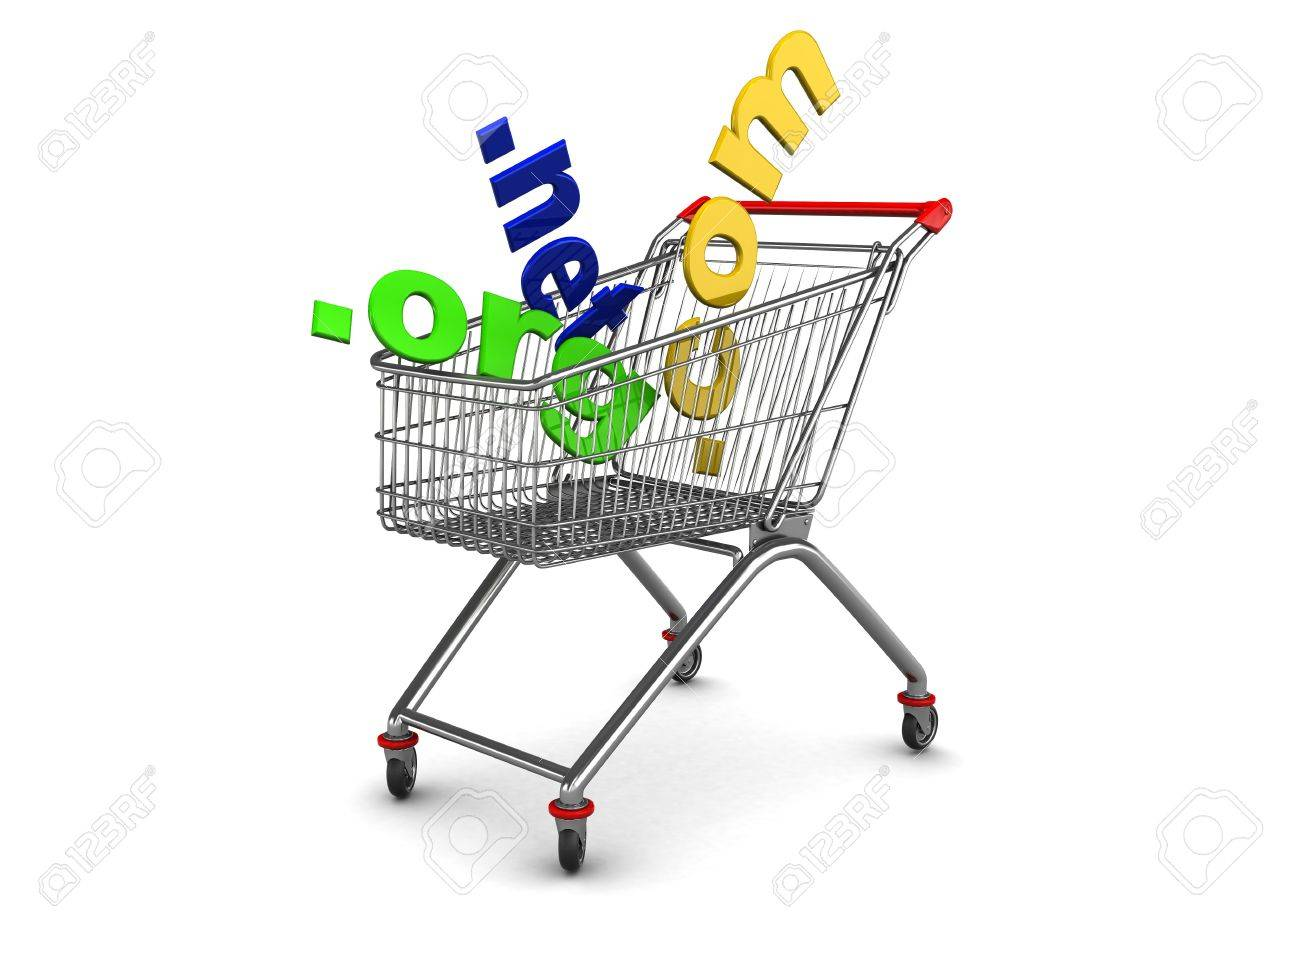 3d illustration of shopping cart with domain names inside Stock Photo - 5520654